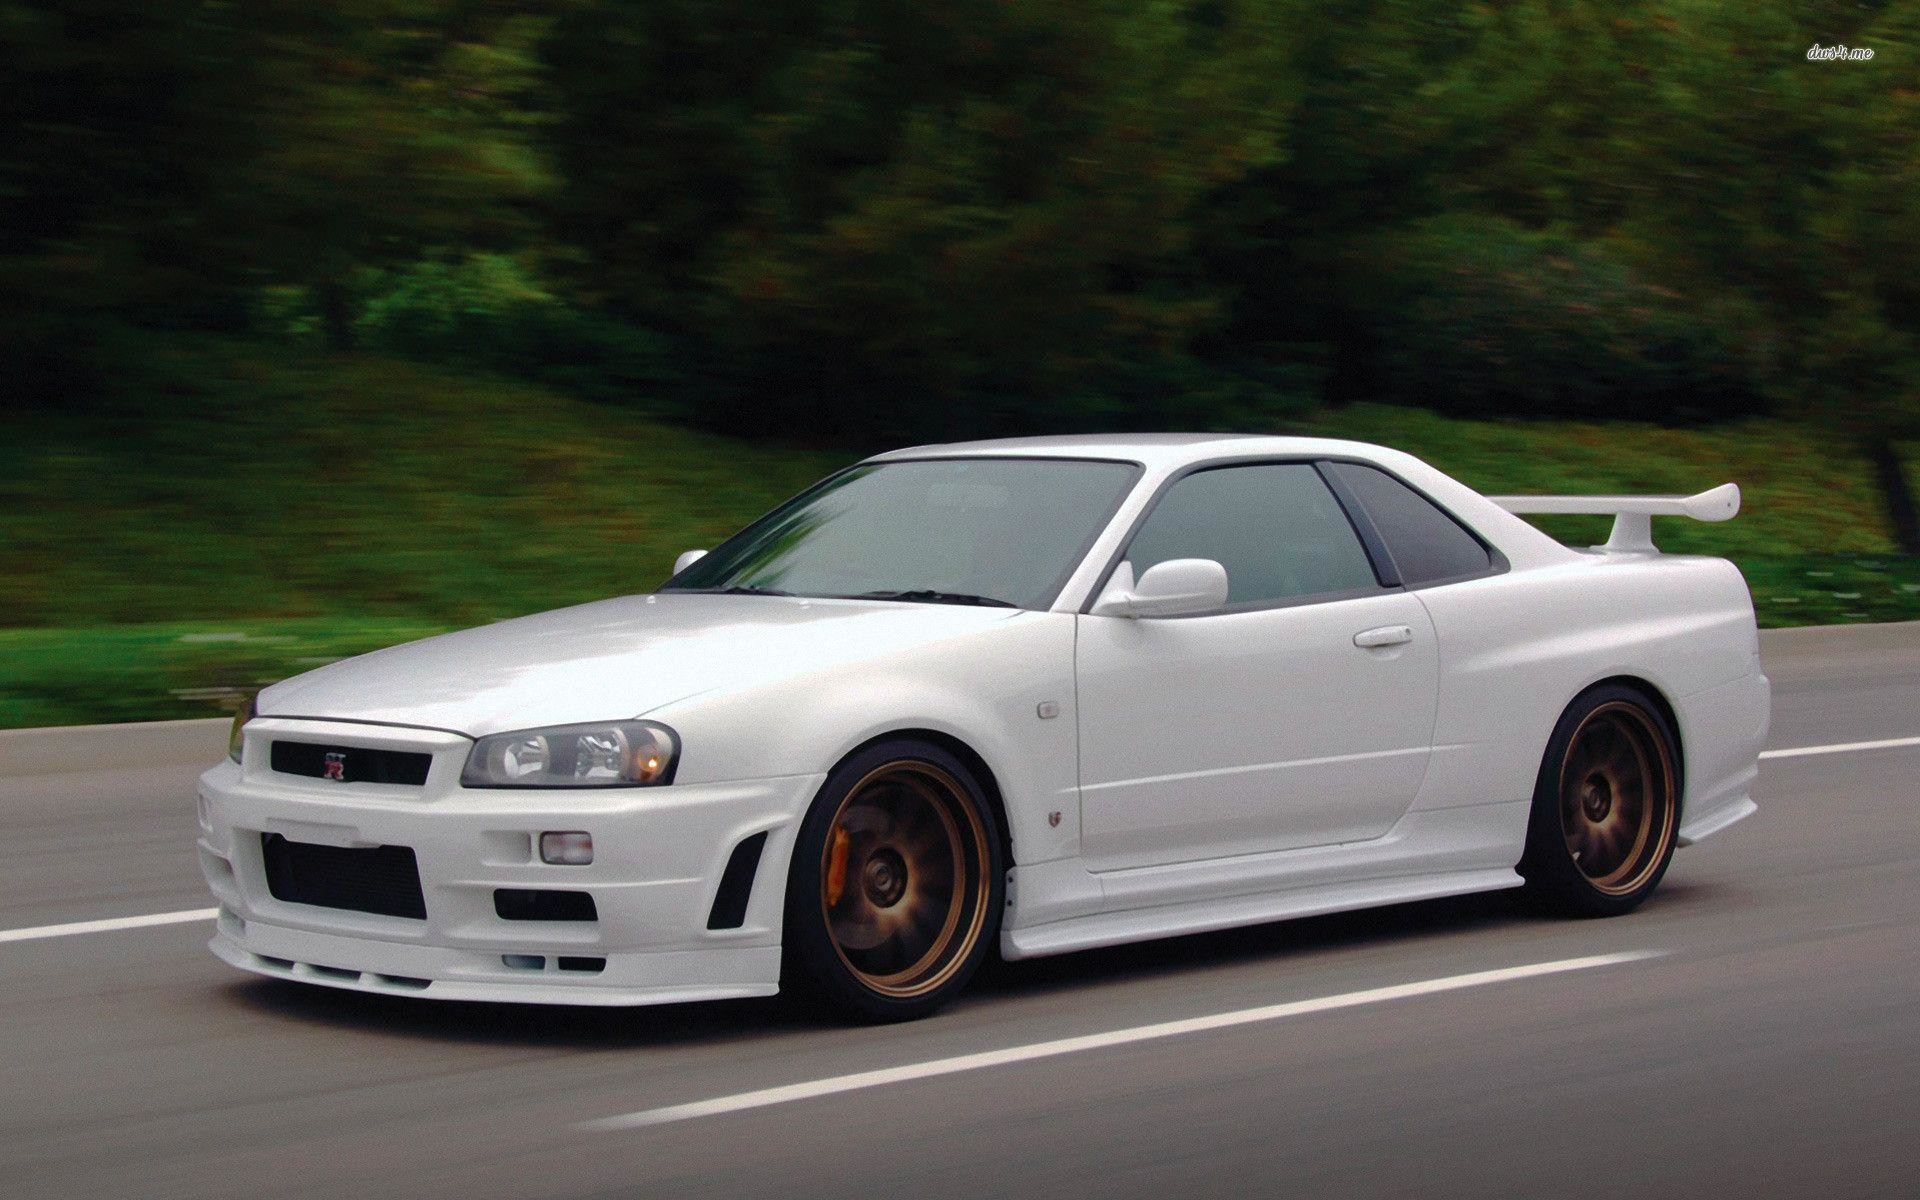 Res: 1920x1200, Nissan Skyline Wallpapers - Full HD wallpaper search